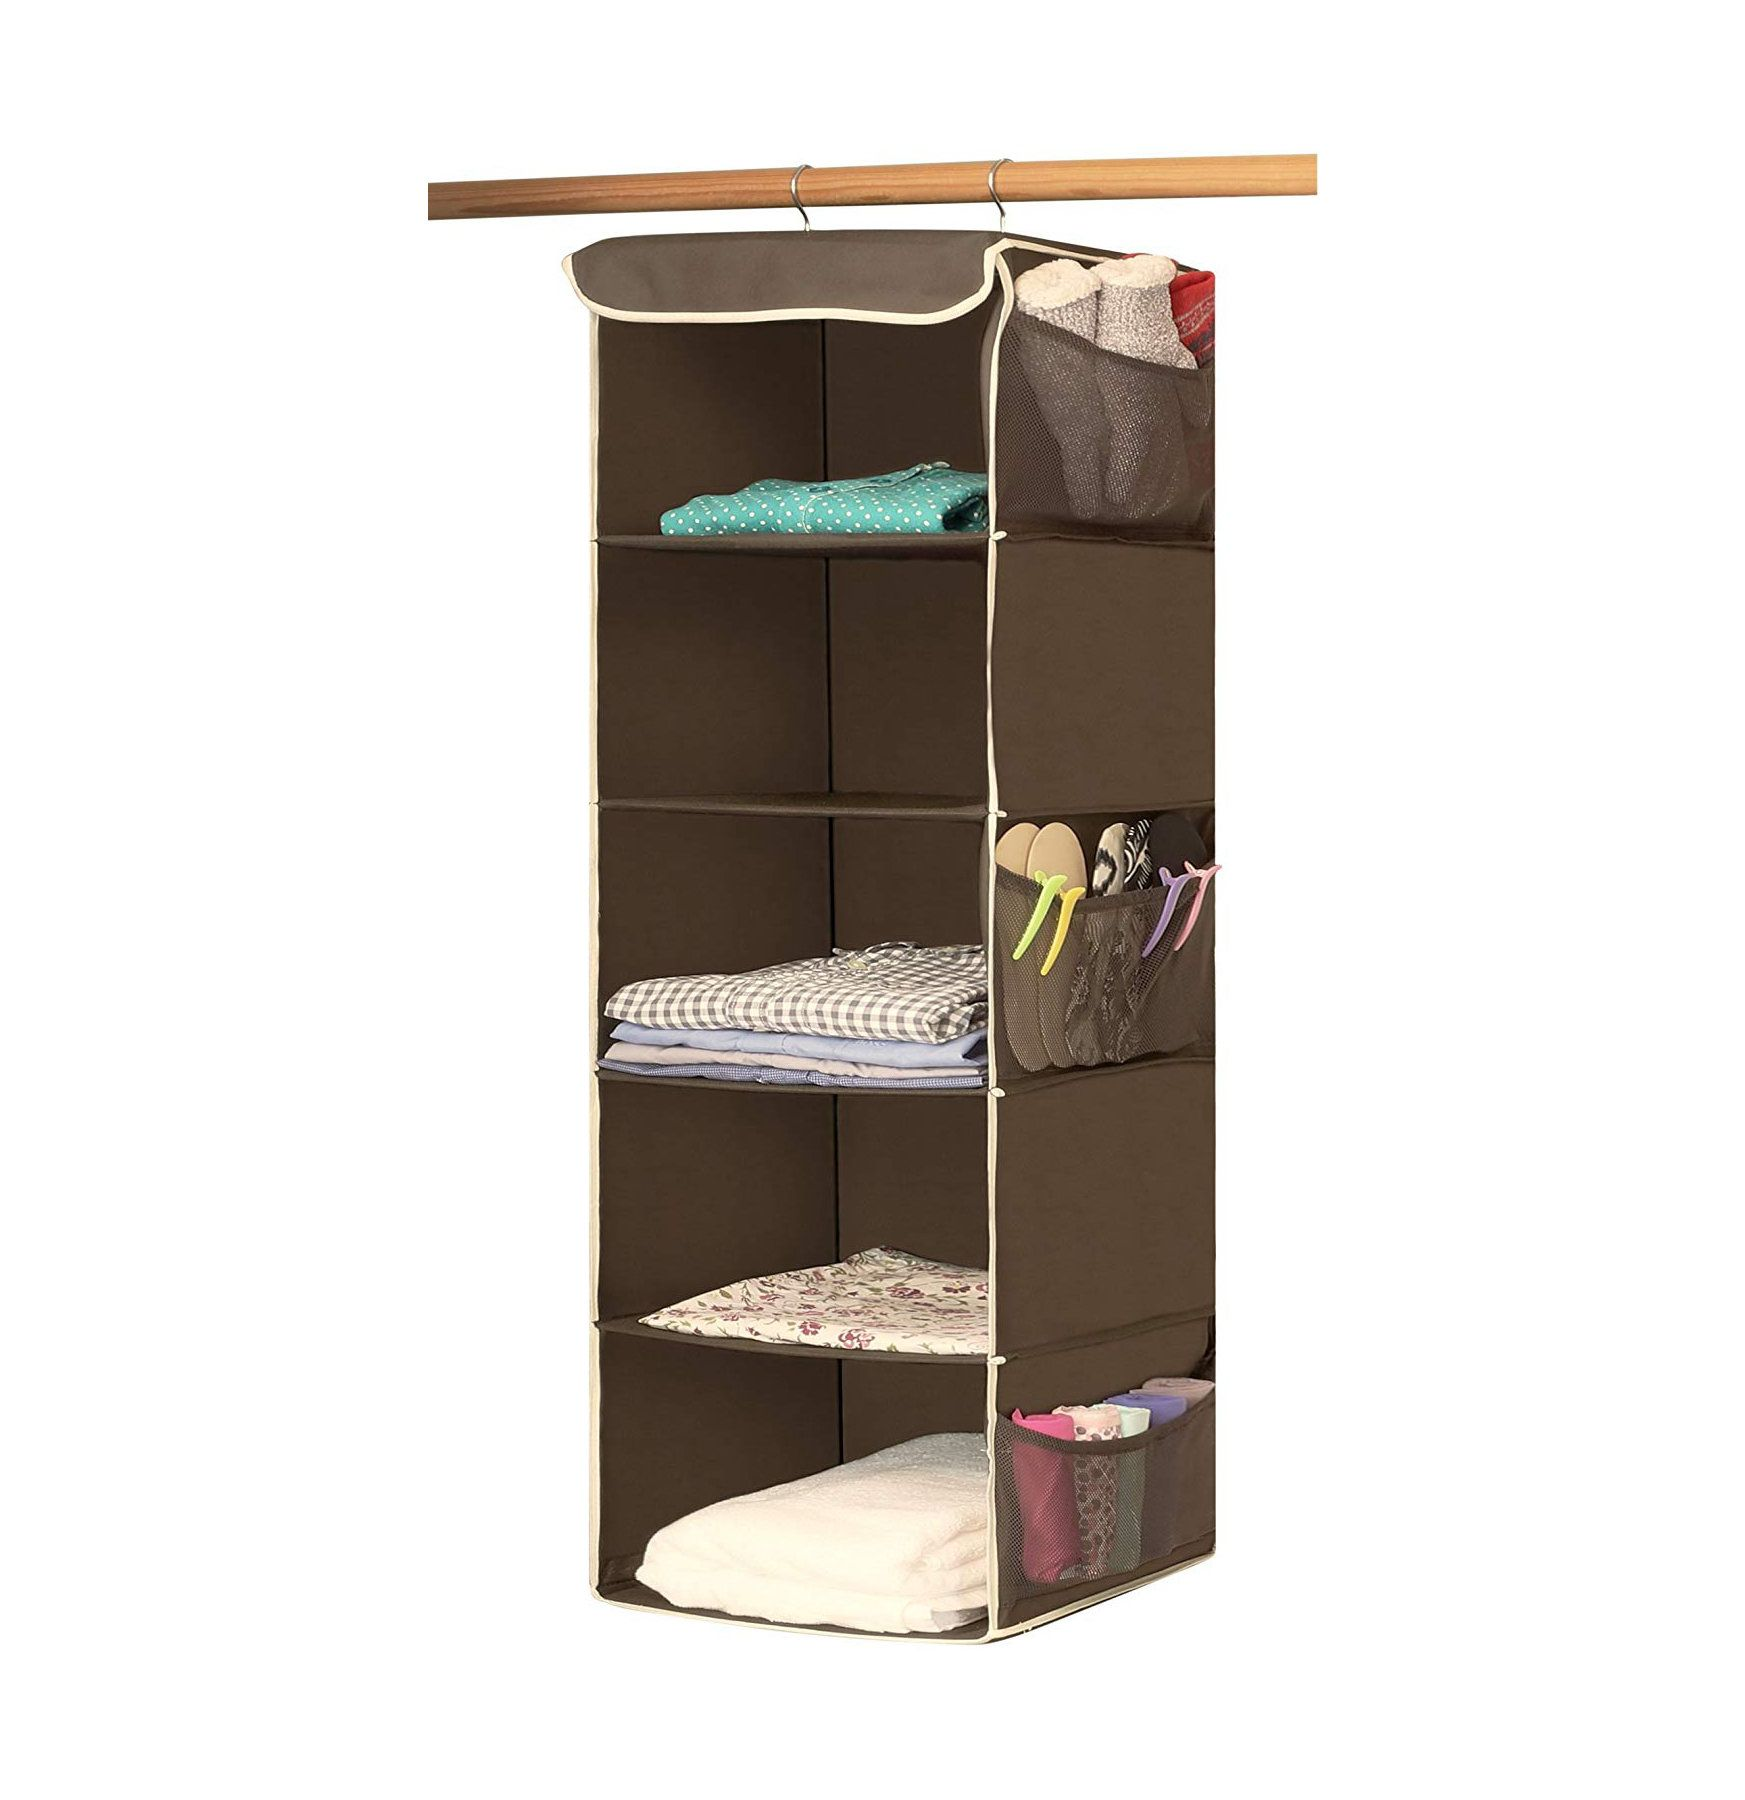 25 Of The Most Life Changing Organization Products On Amazon Hanging Closet Organizer Hanging Closet Dorm Storage